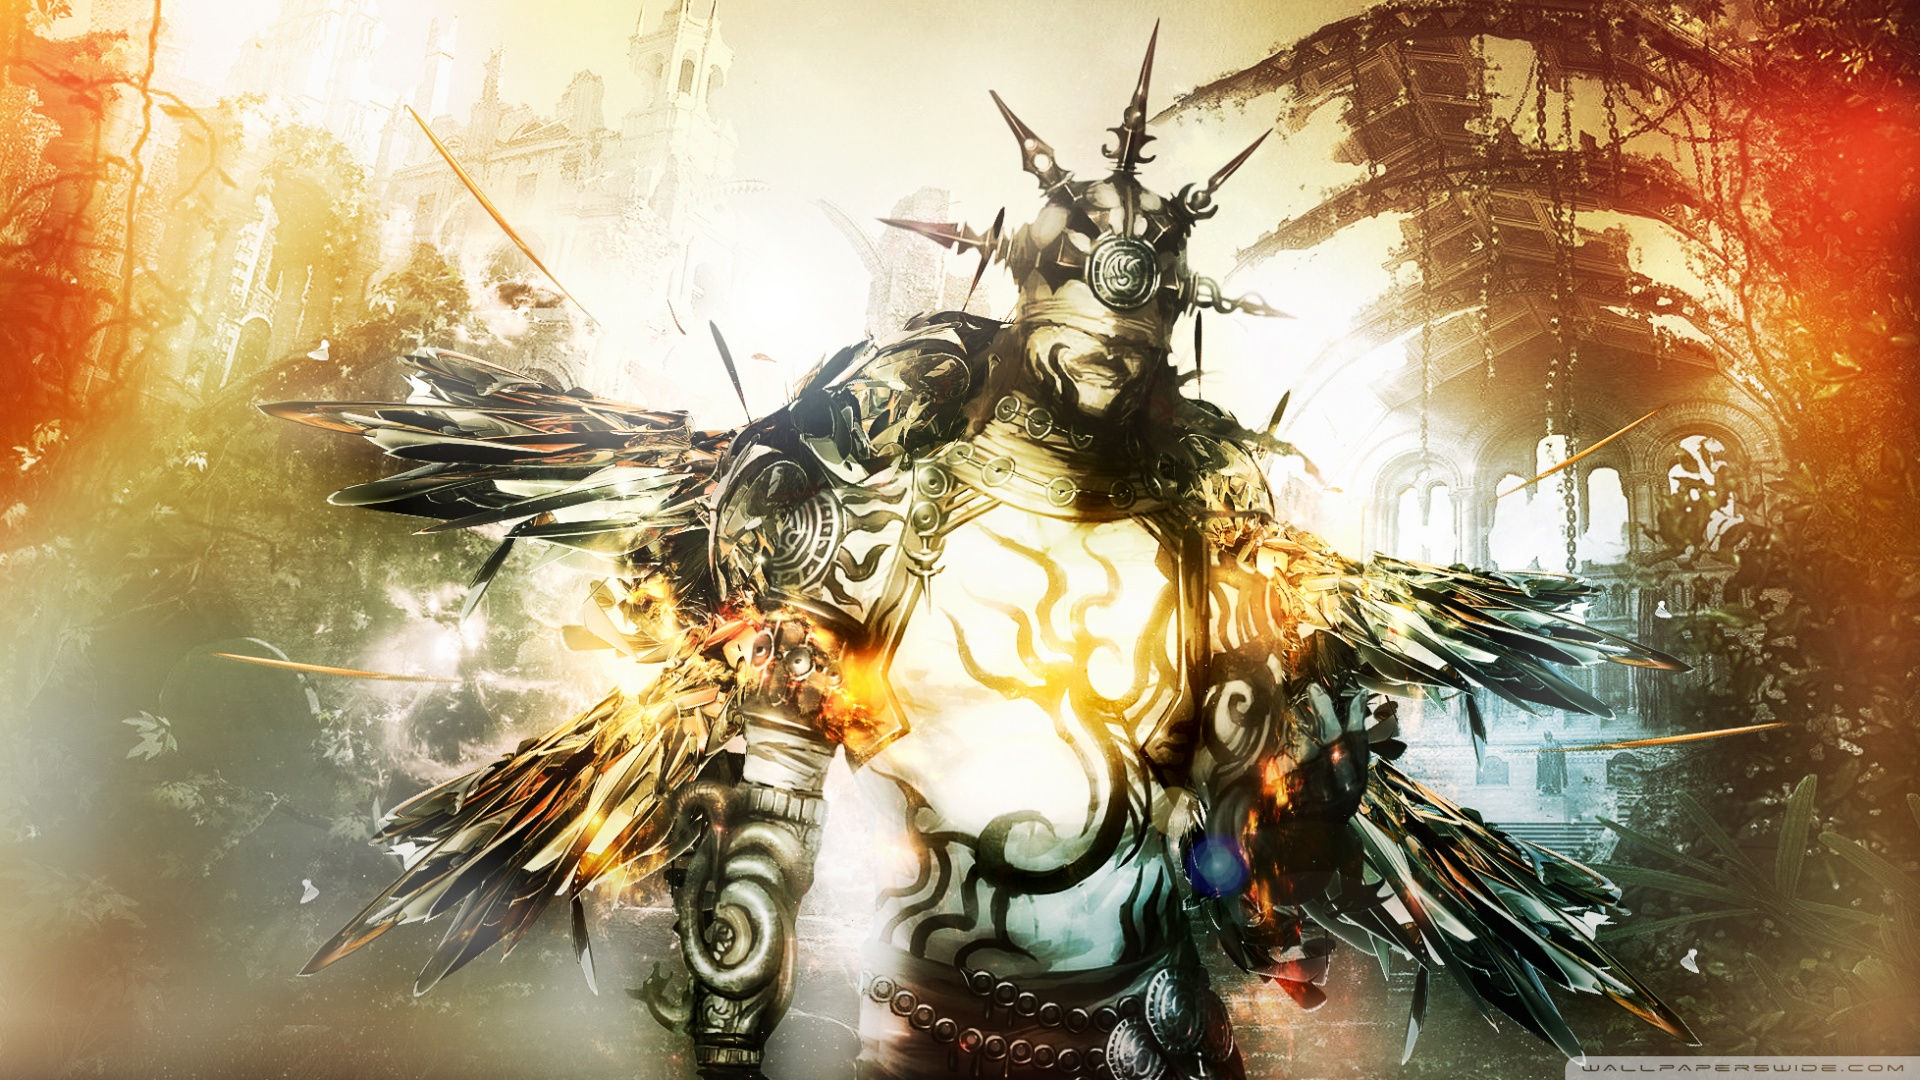 Free Download Guild Wars 2 Wallpaper 1080p 1920x1080 For Your